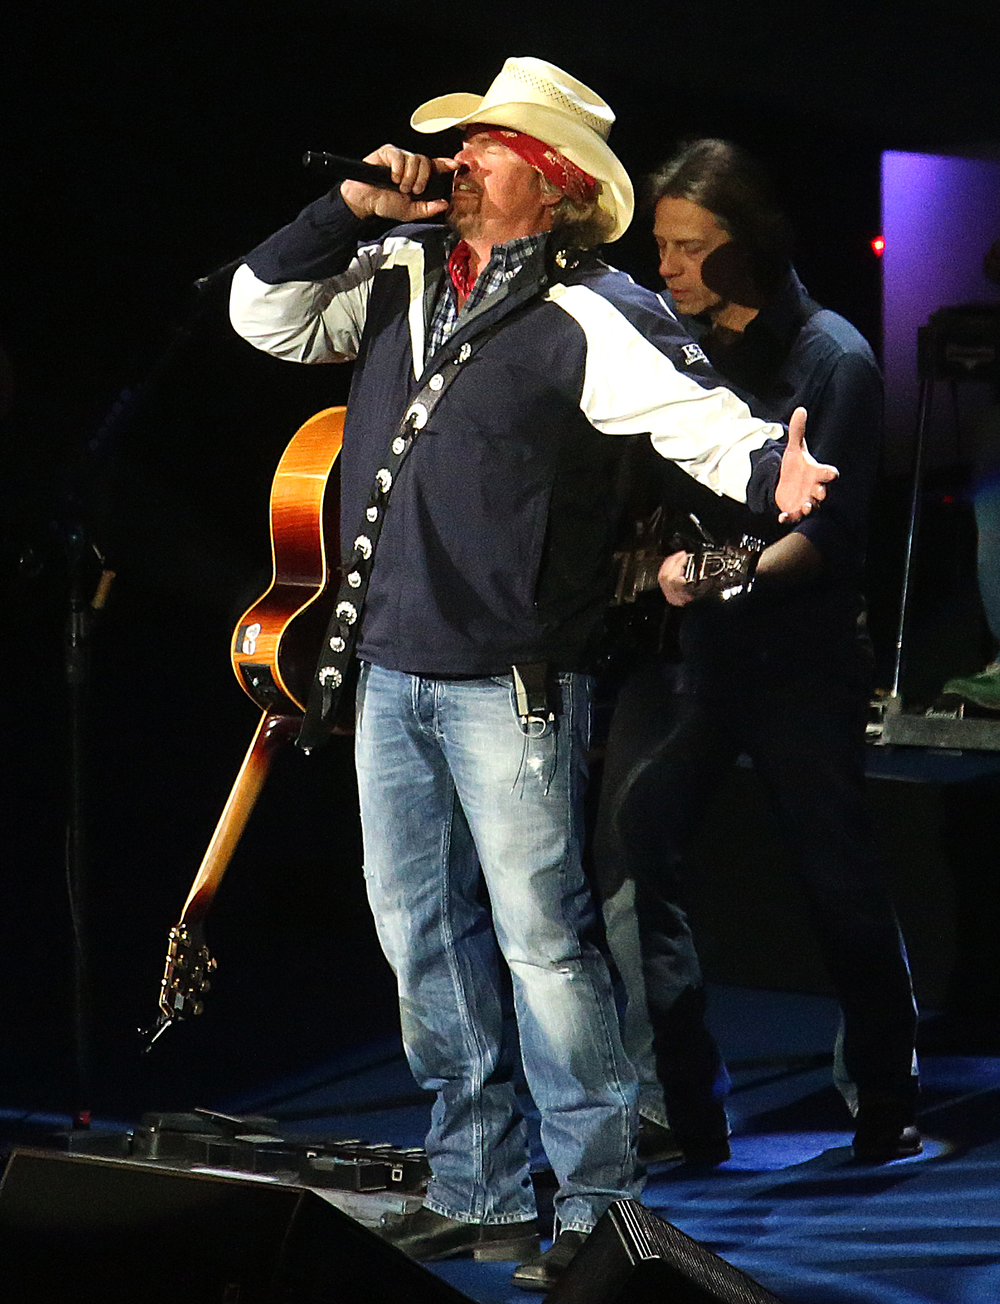 Toby Keith performs American Ride to open his set Monday night. Replacing the traditional inaugural ball, a concert with country singer Toby Keith as headliner took place at the Prairie Capital Convention Center in Springfield marking Bruce Rauner becoming the 42nd governor of Illinois Monday evening, Jan. 12, 2015. David Spencer/The State Journal-Register